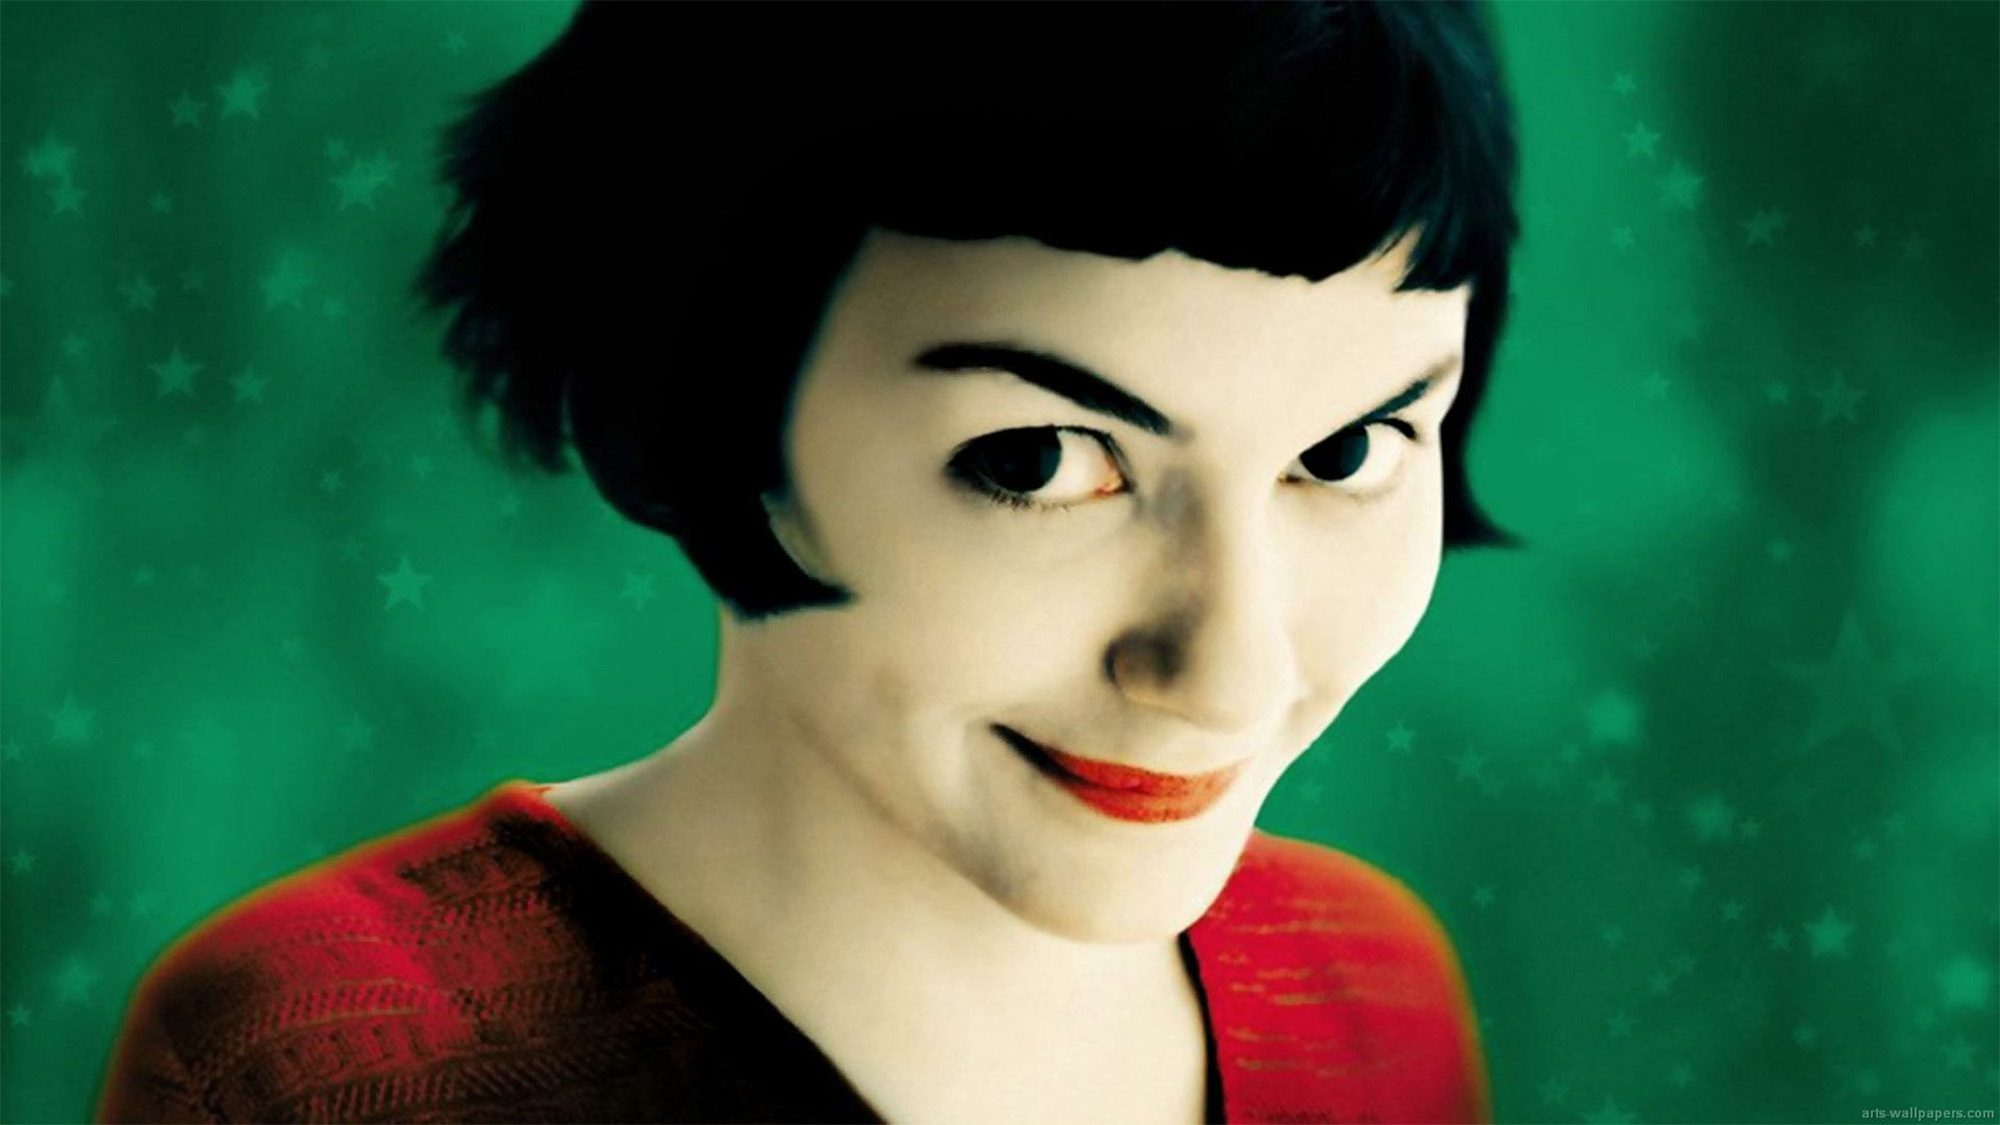 To celebrate its recent Netflix release, here's a ranking of the ten moments that made us fall in love with 'Amélie' – the character and the film.